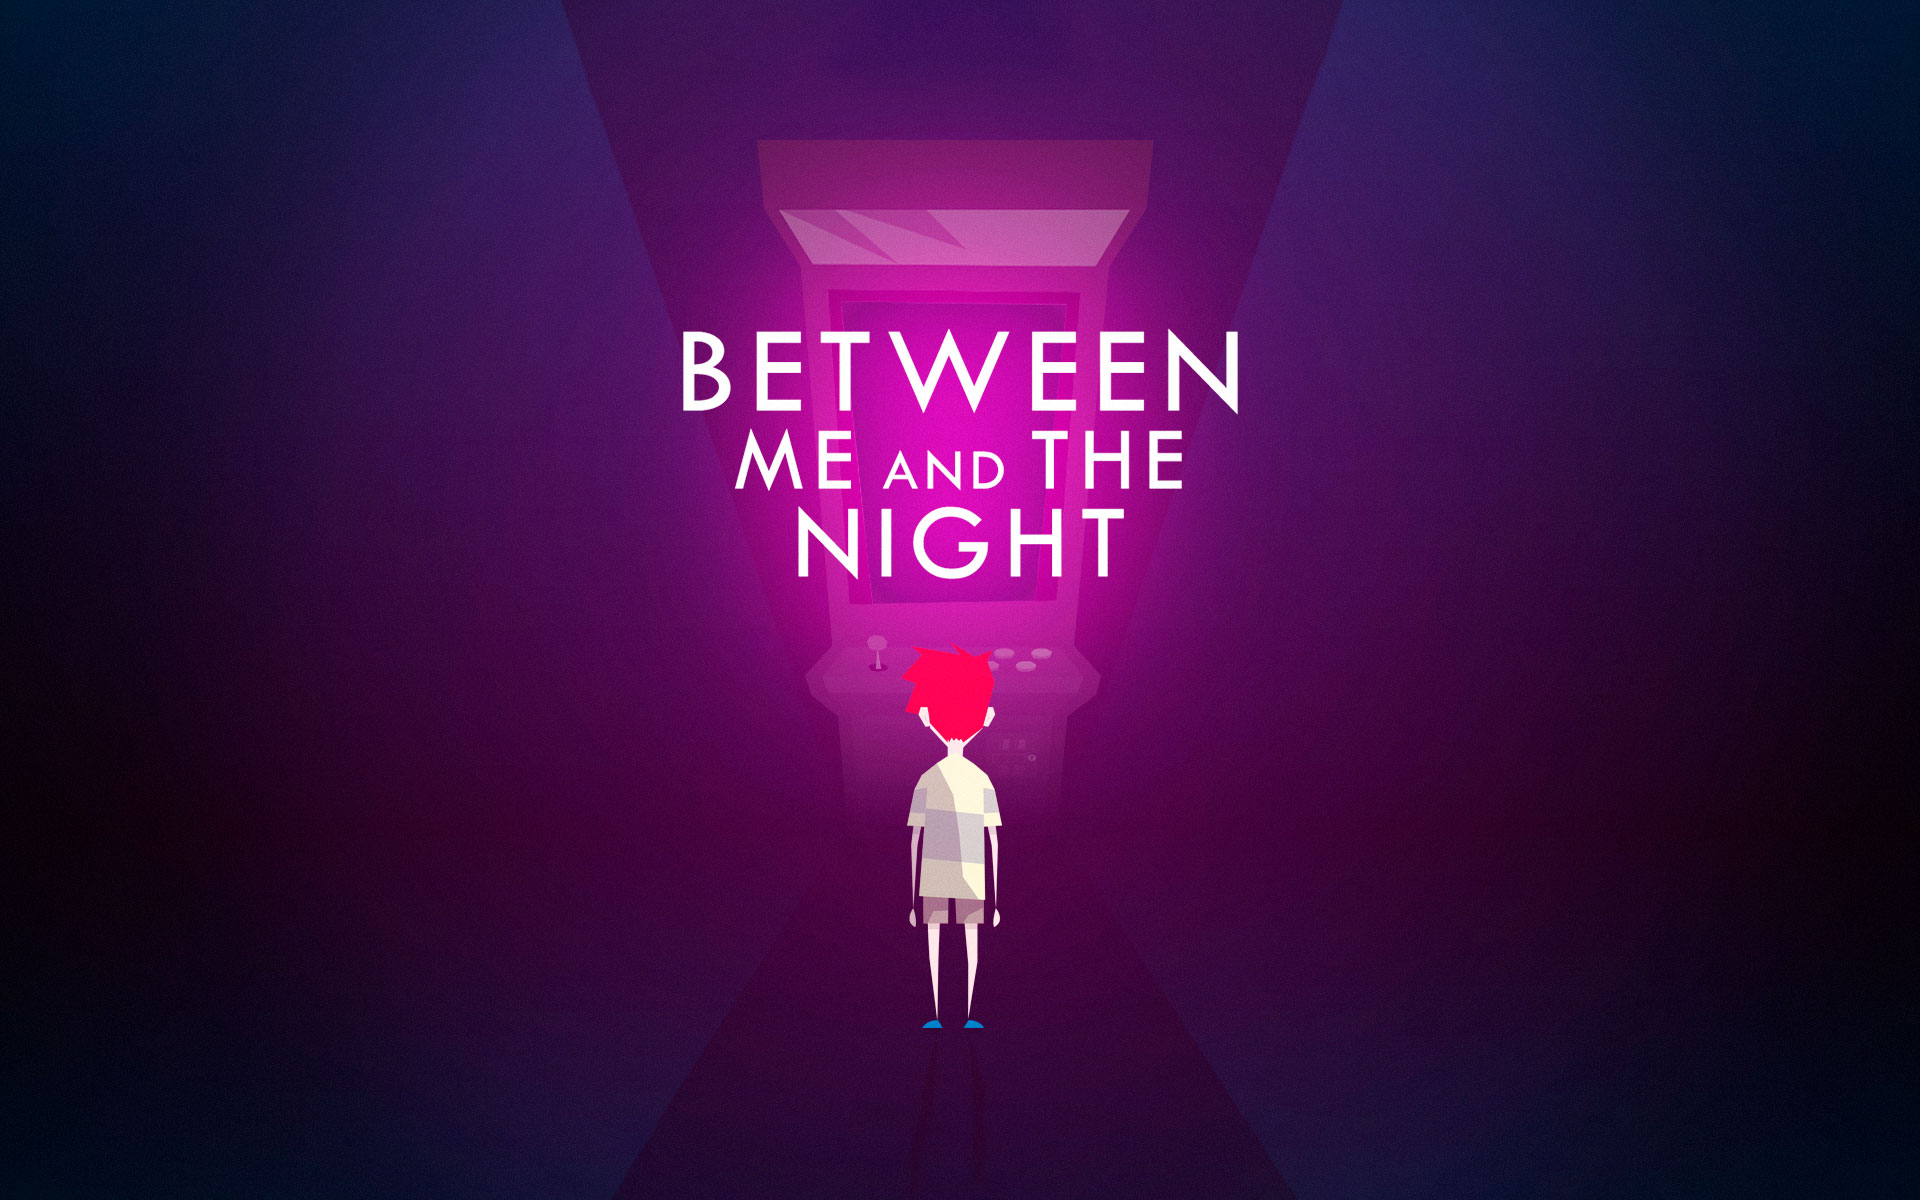 Between Me and the Night